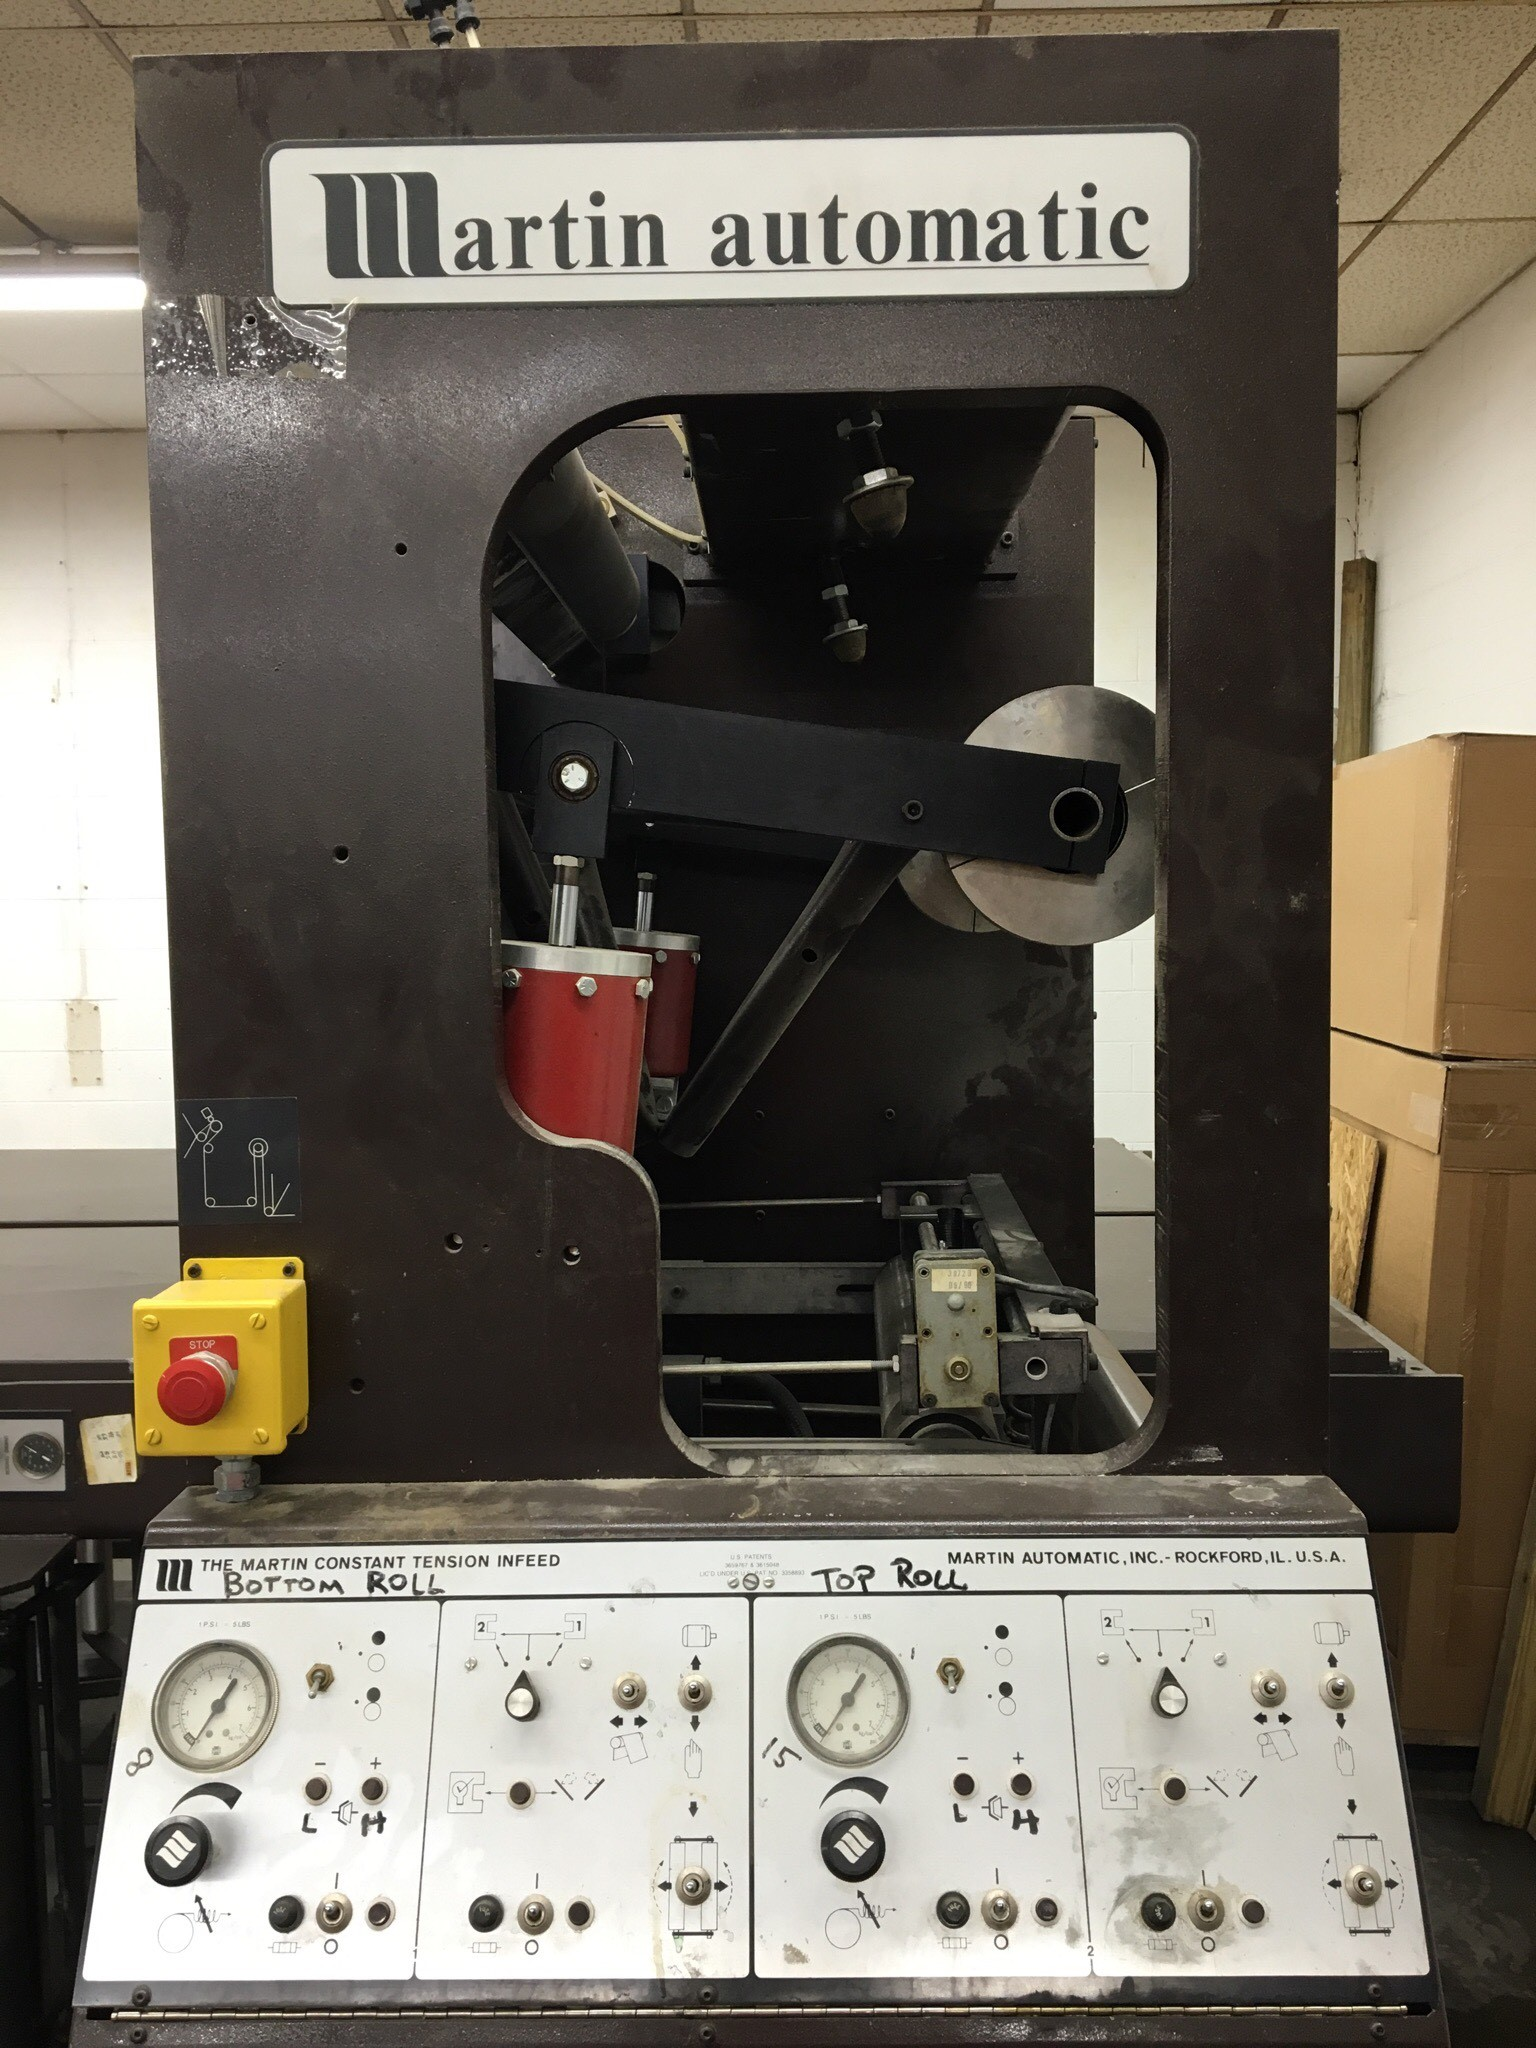 Martin EC Butt Splicer - Used Flexo Printing Presses and Used Flexographic Equipment-2